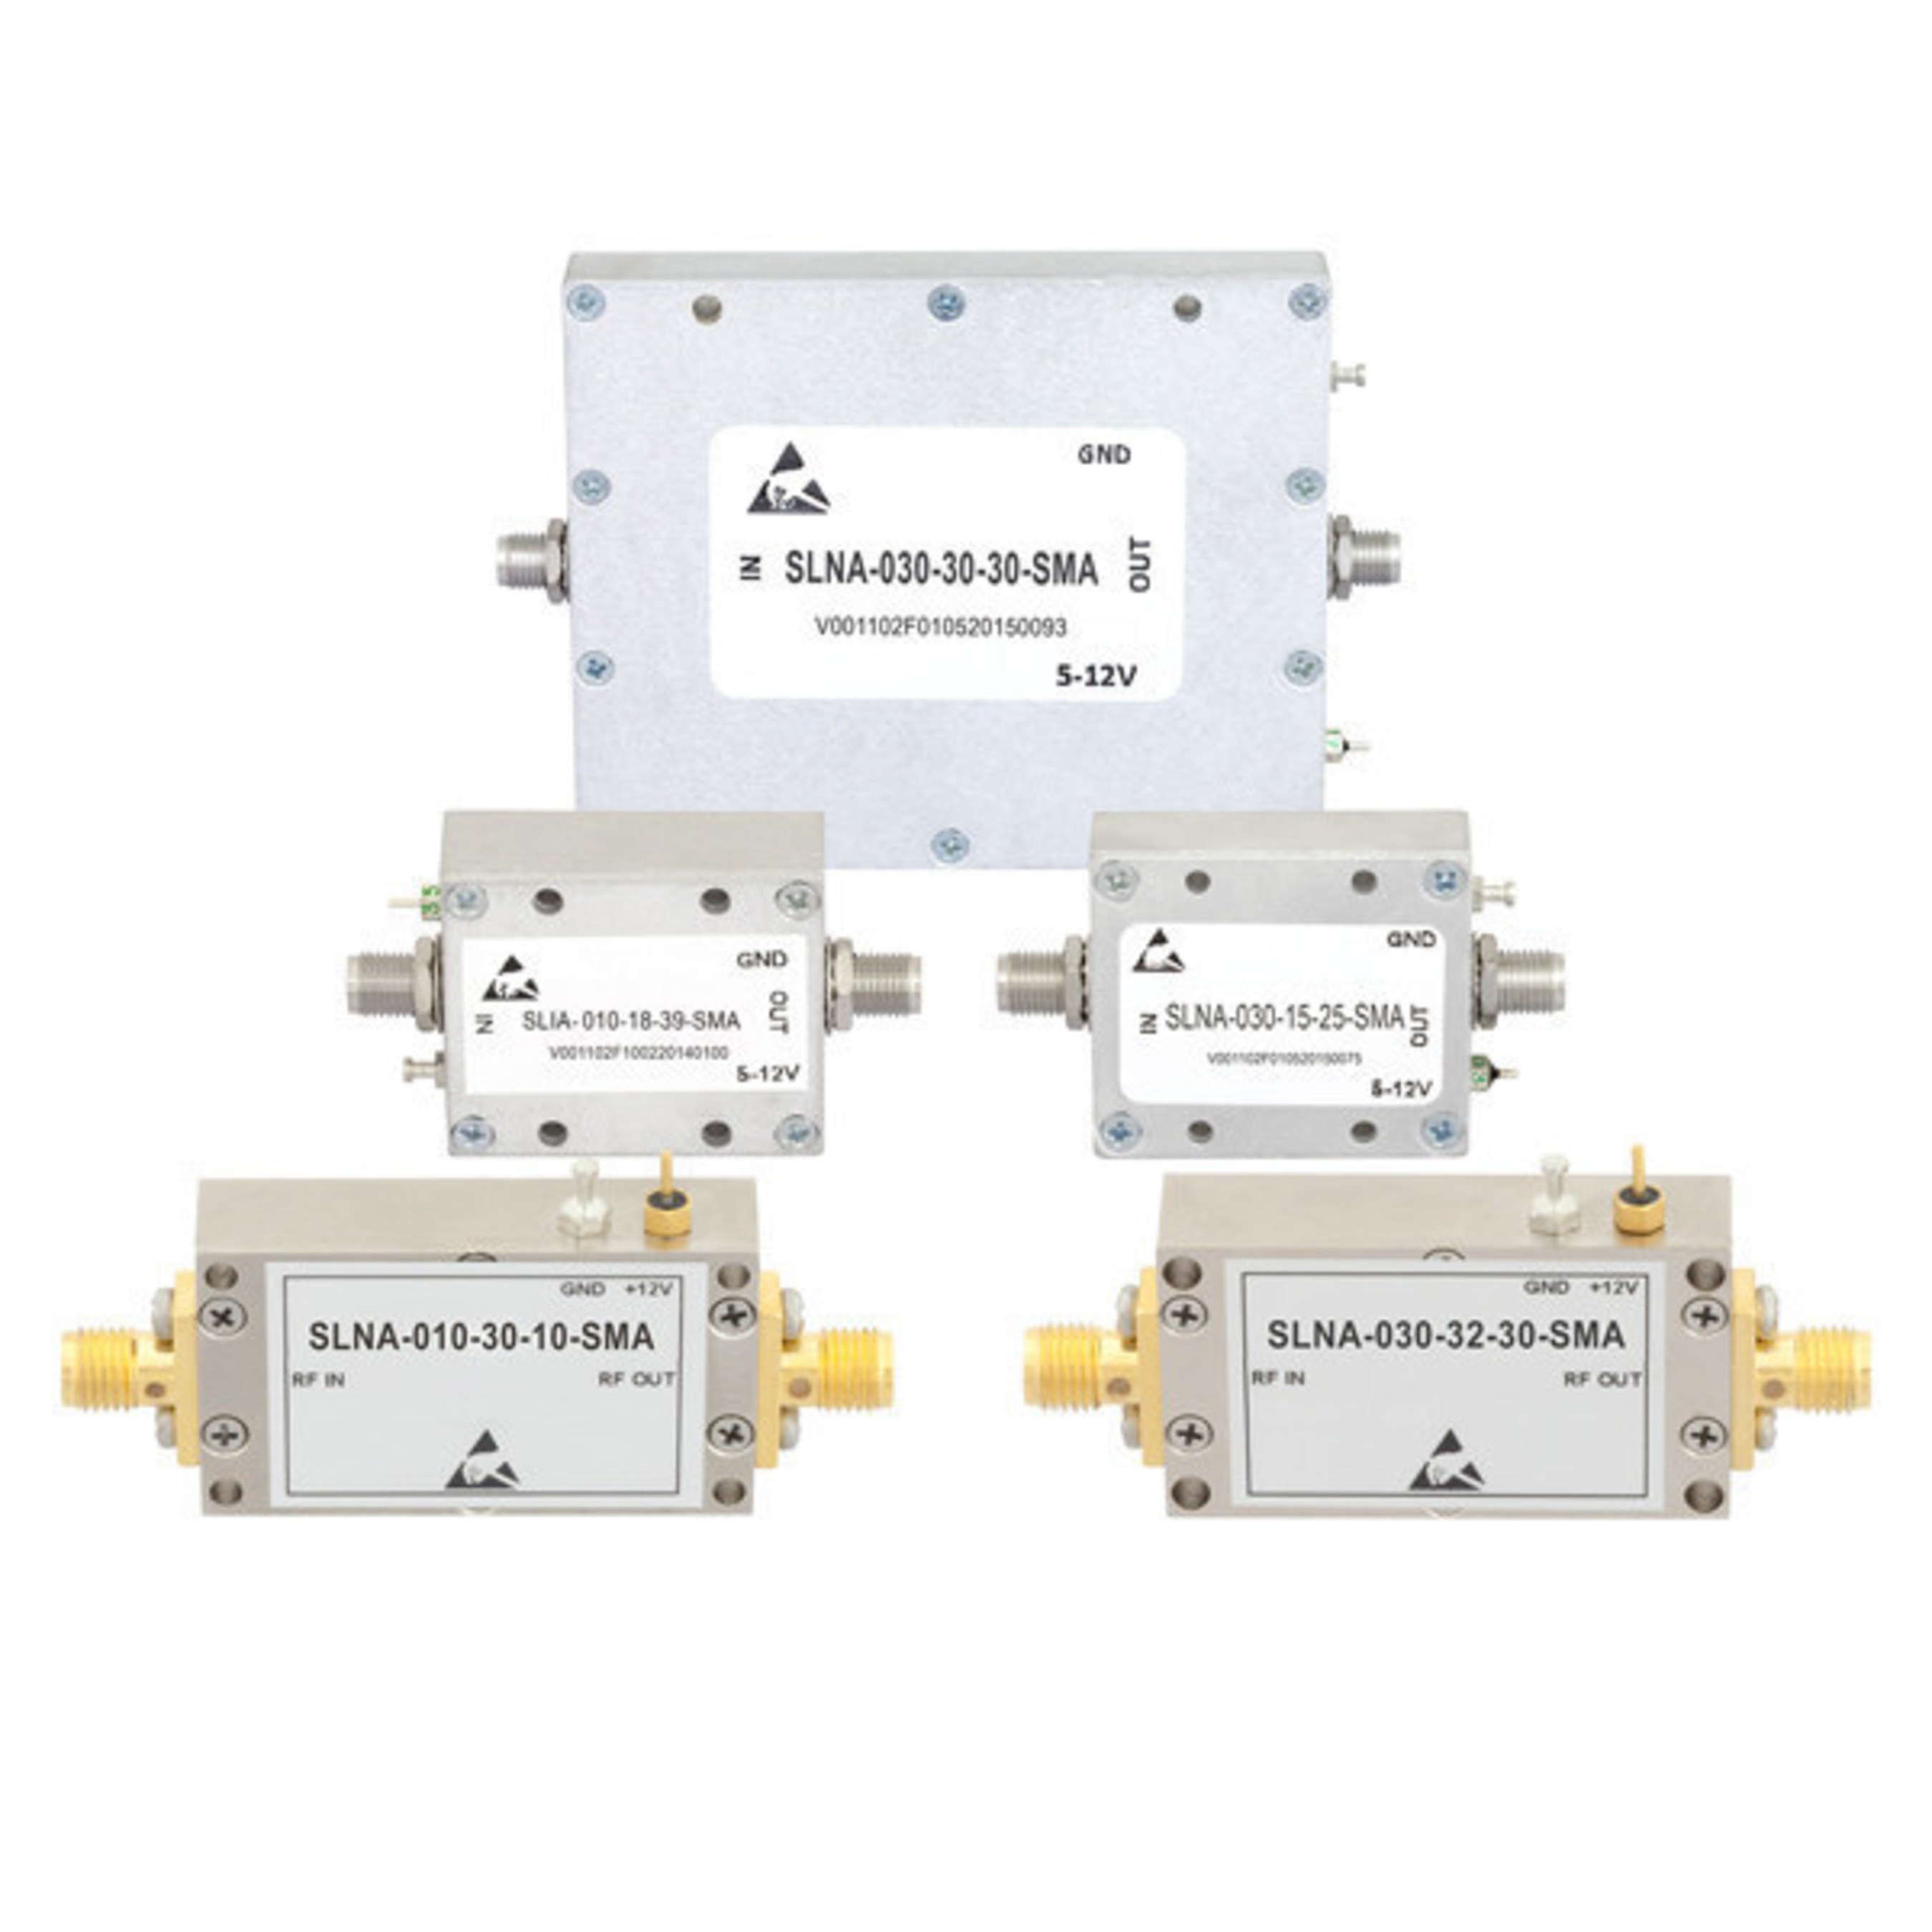 Fairview Microwave Introduces Cost Effective Coaxial Packaged Low Noise Amplifiers for the